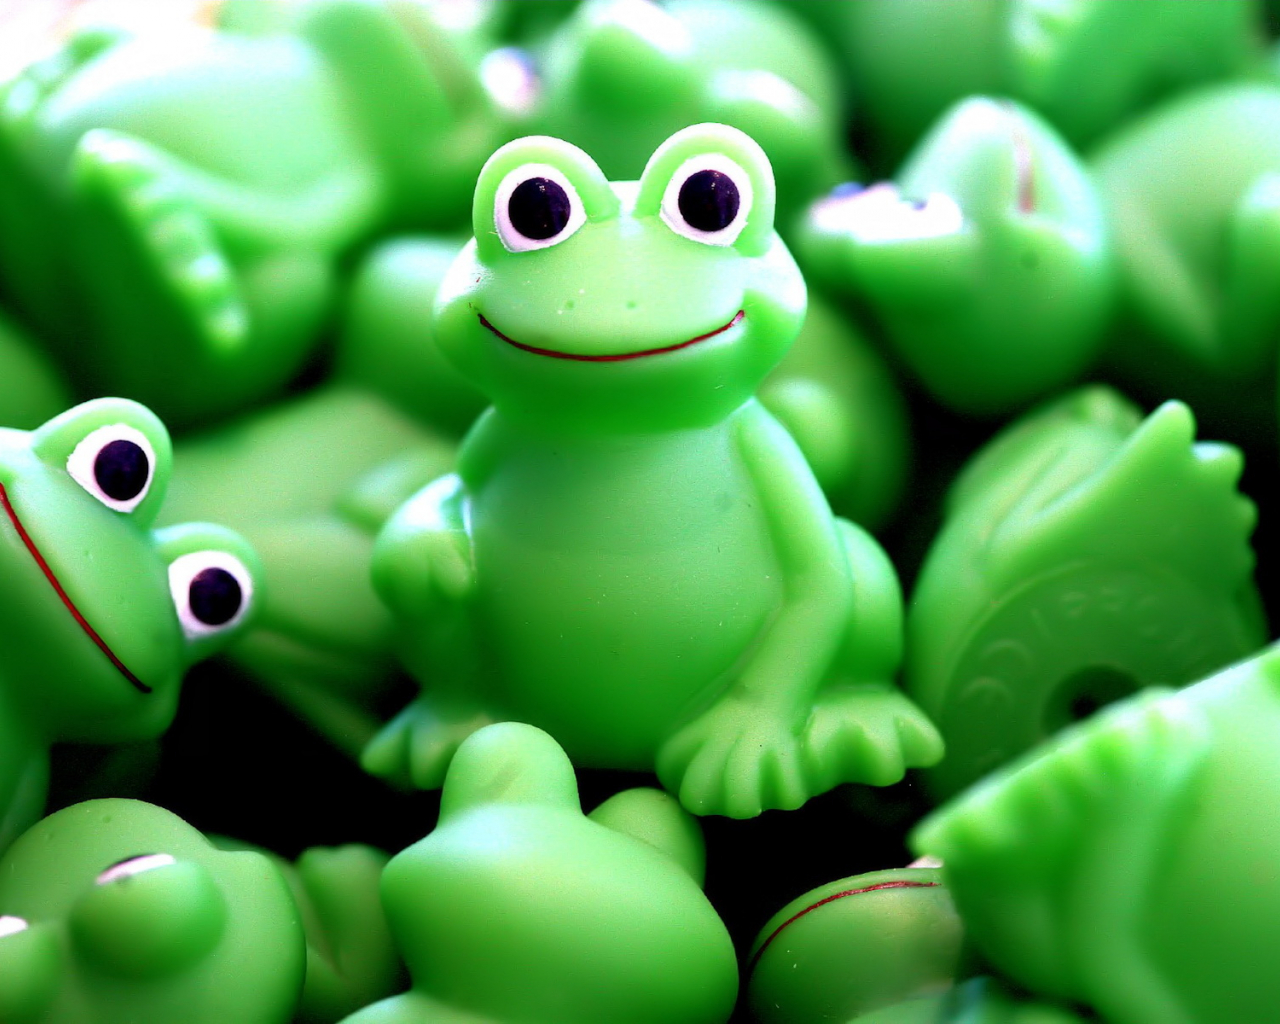 Free Download Green Frogs Wallpapers55com Best Wallpapers For Pcs Laptops 1600x1200 For Your Desktop Mobile Tablet Explore 50 Animated Frog Wallpaper For Computer 3d Moving Wallpapers Free Here are only the best indie wallpapers. wallpapersafari